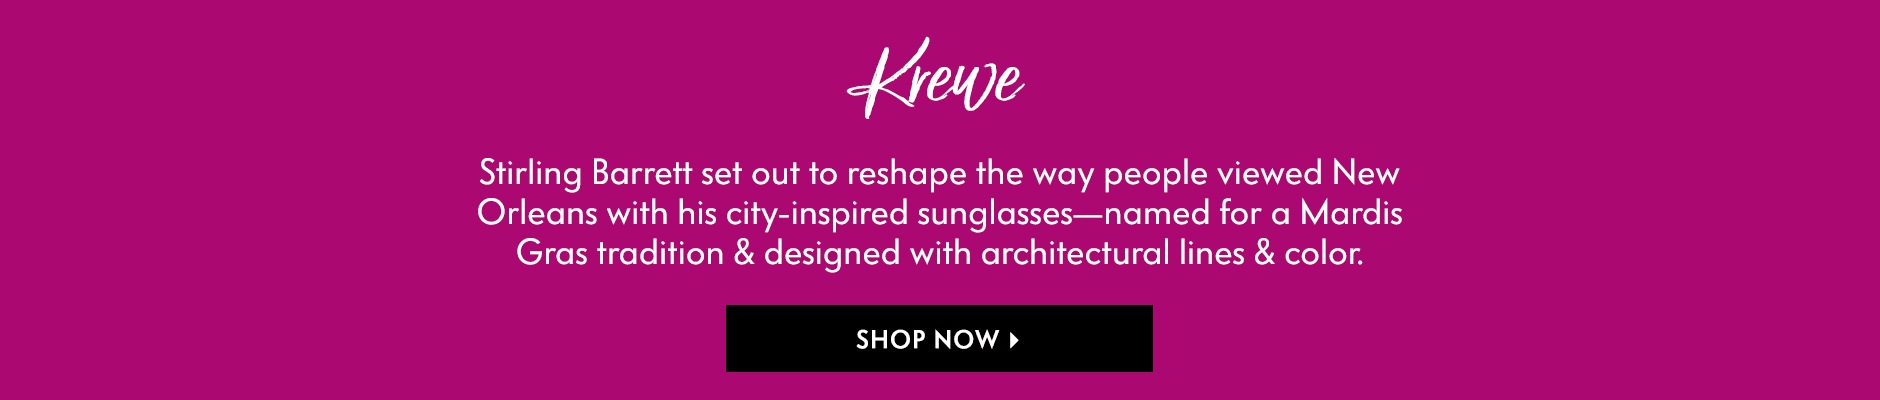 Krewe - Stirling Barrett set out to reshape the way people viewed New Orleans with his city-inspired sunglasses???named for a Mardis Gras tradition & designed with architectural lines & color.